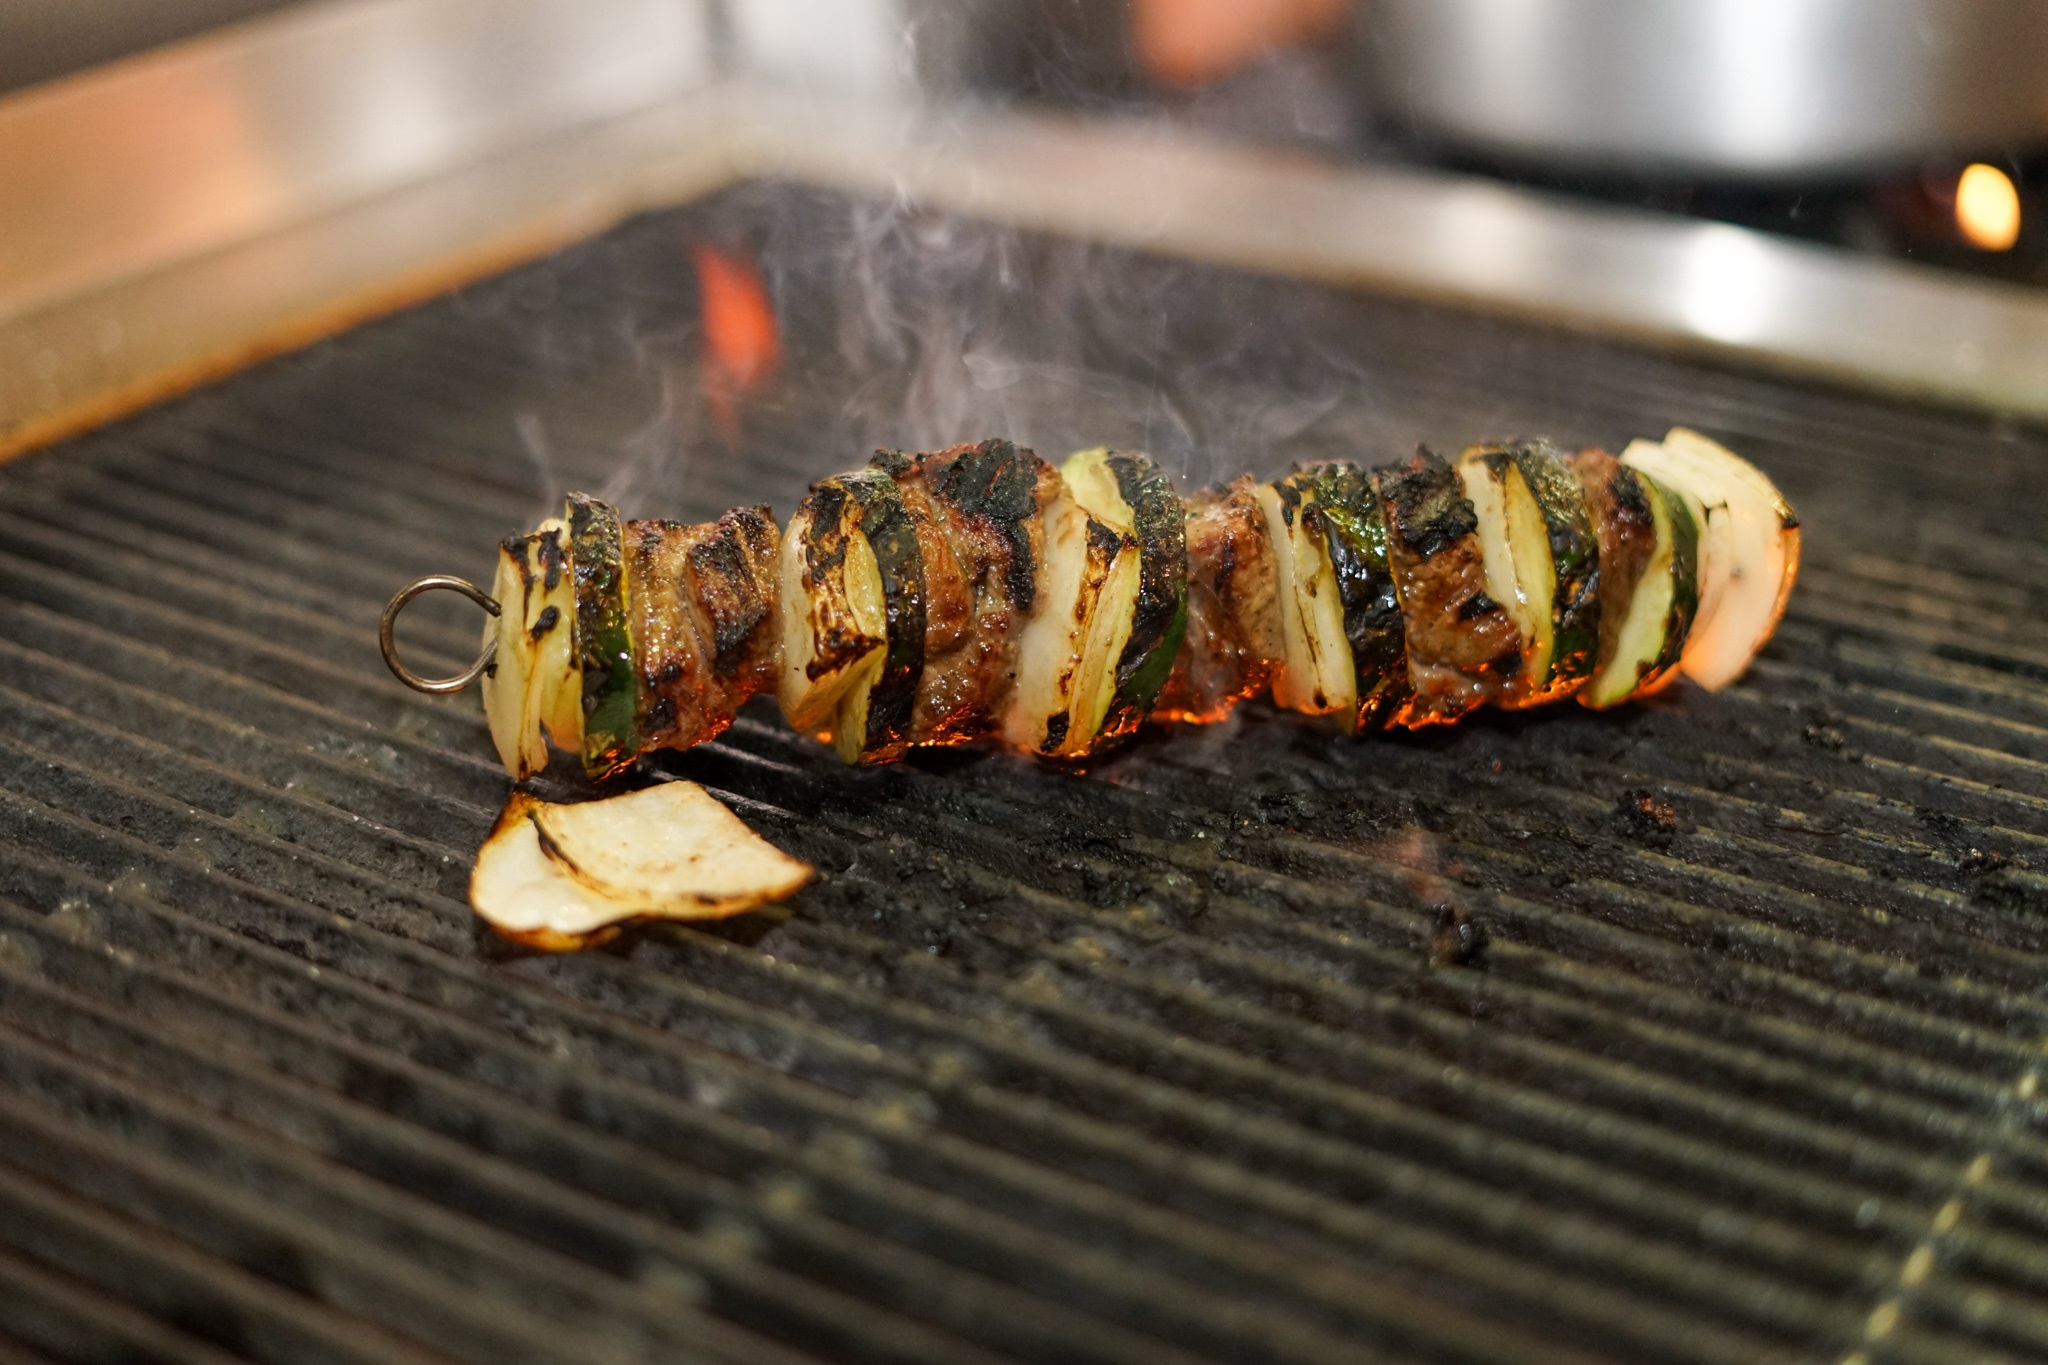 Skewer on the grill at Ludobab